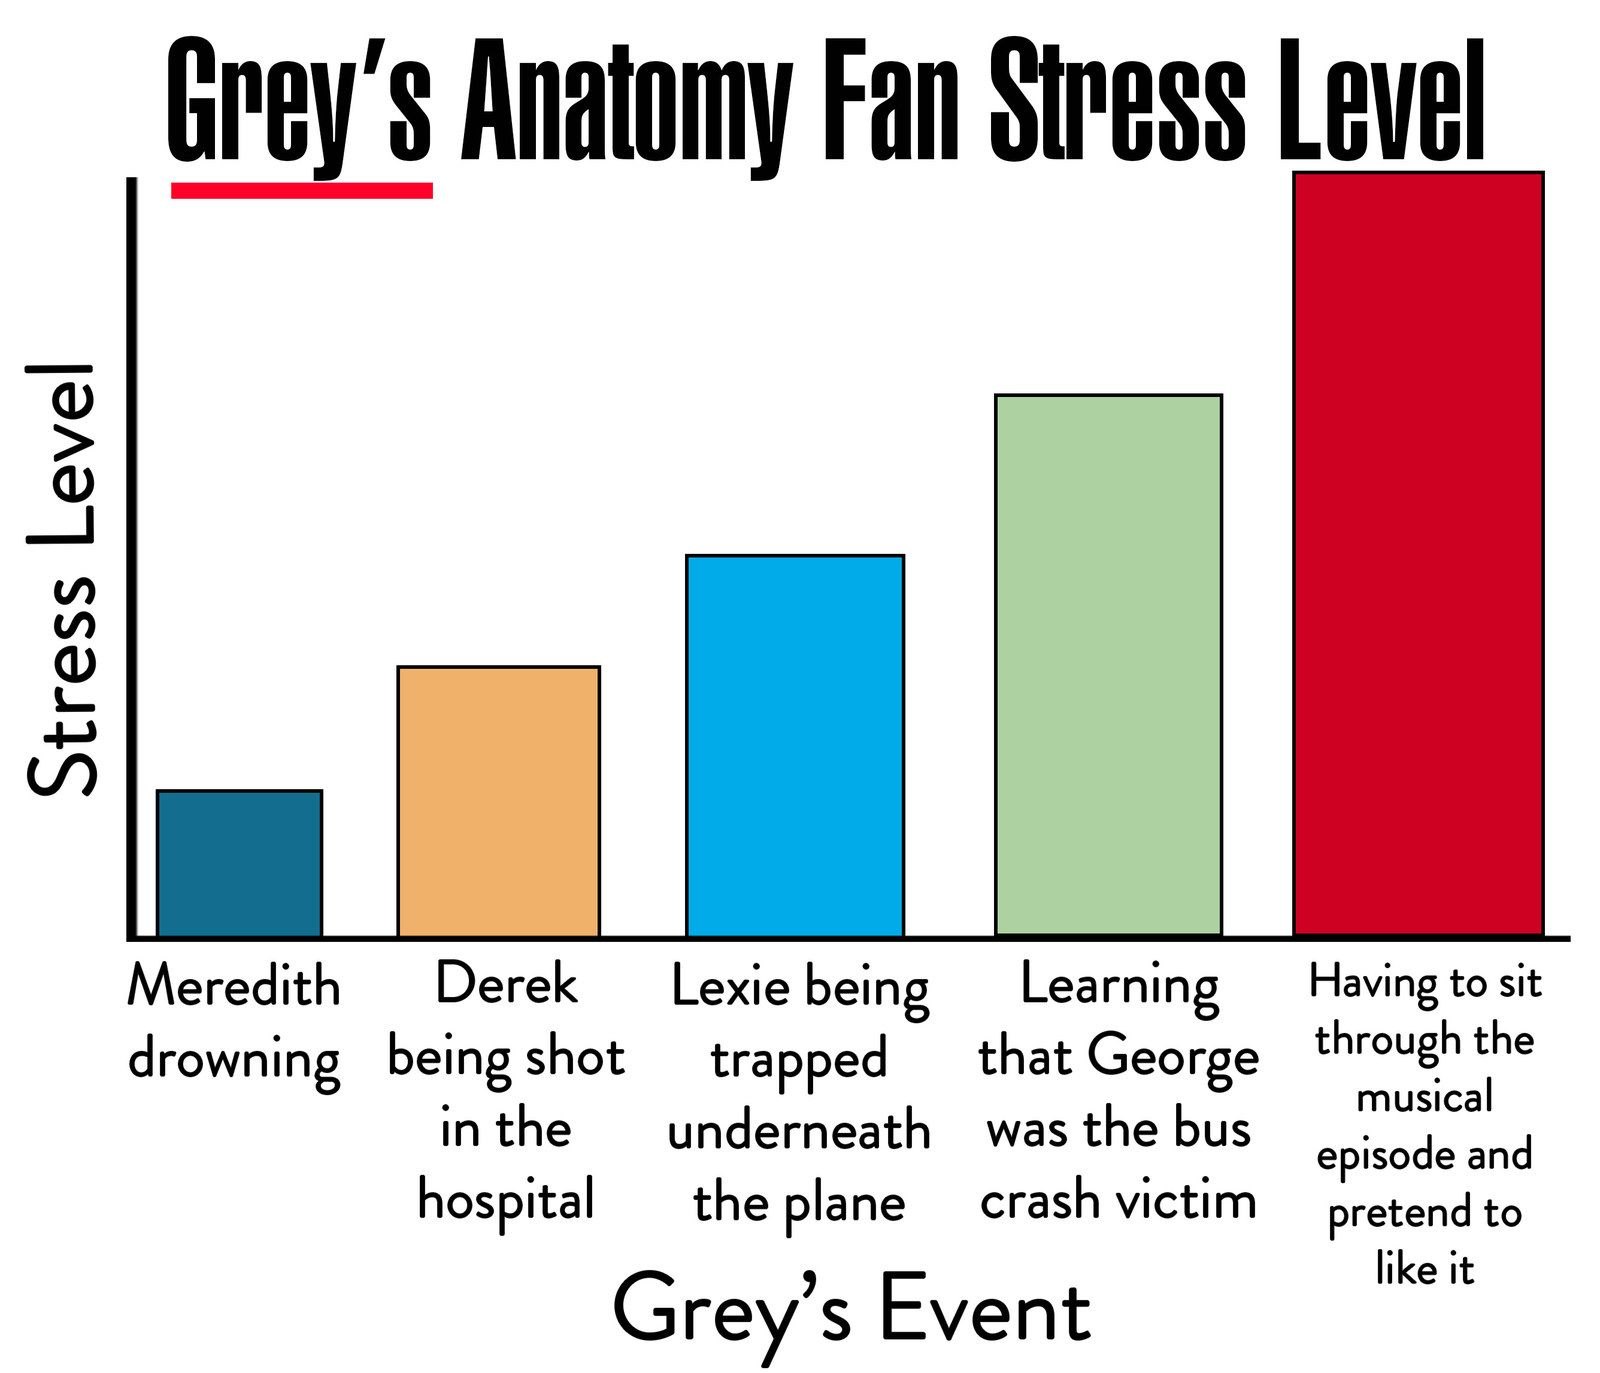 15 Charts You'll Only Get If You Love Grey's Anatomy #greysanatomy